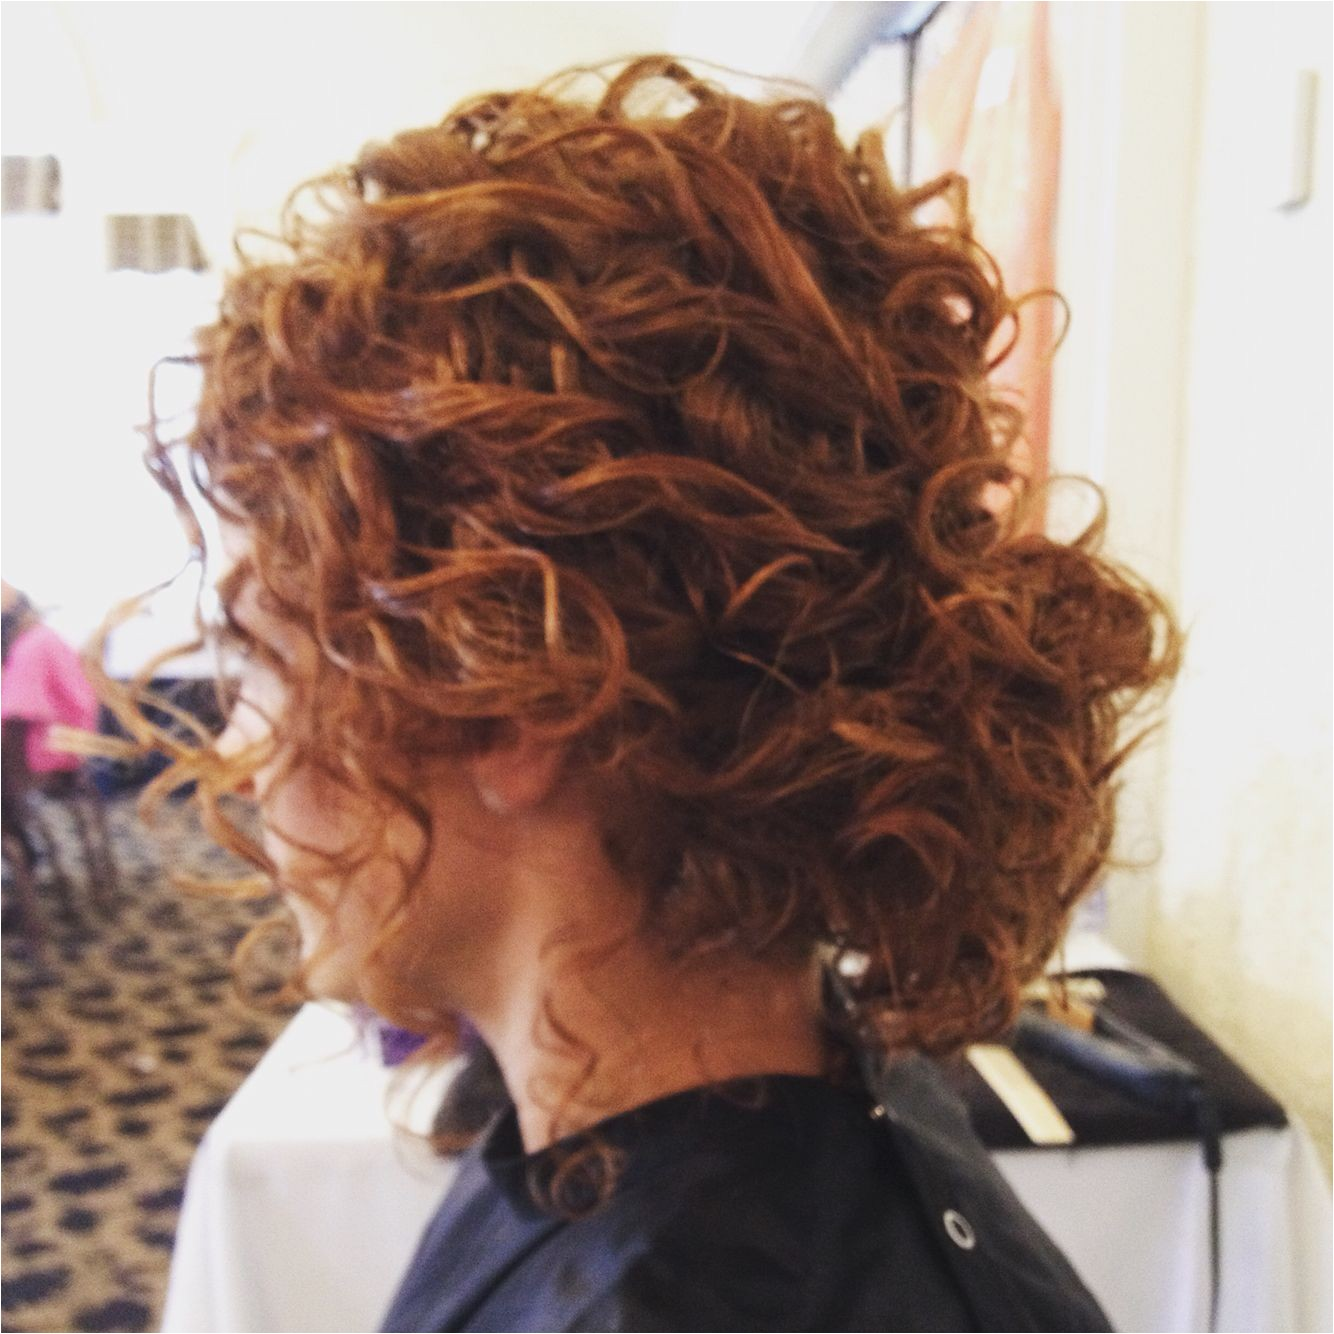 Hairstyle · Updo for Natural Curly Hair Naturally Curly Hair Low Bun Updo Hair Pinterest